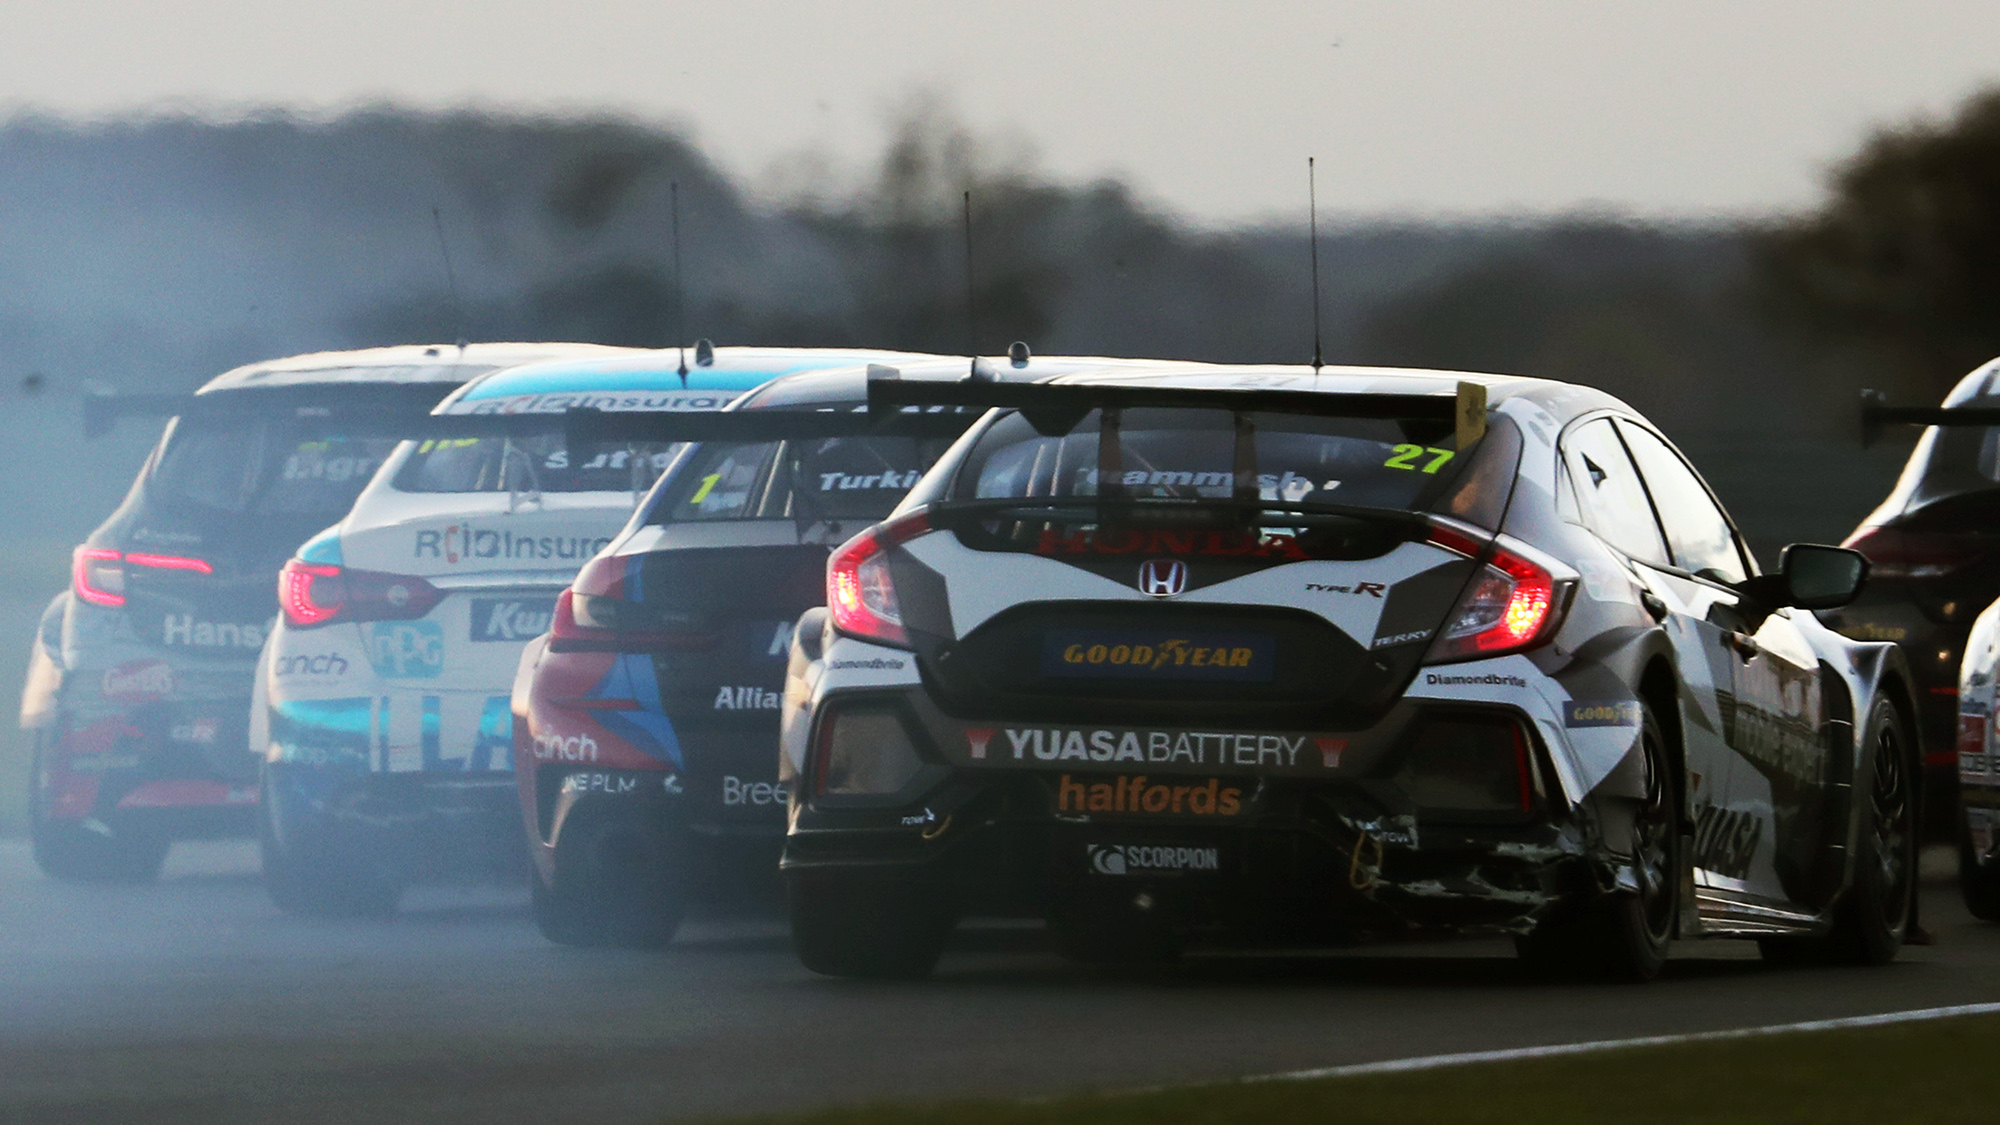 Four cars battle at Snetterton in the 2020 BTCC round